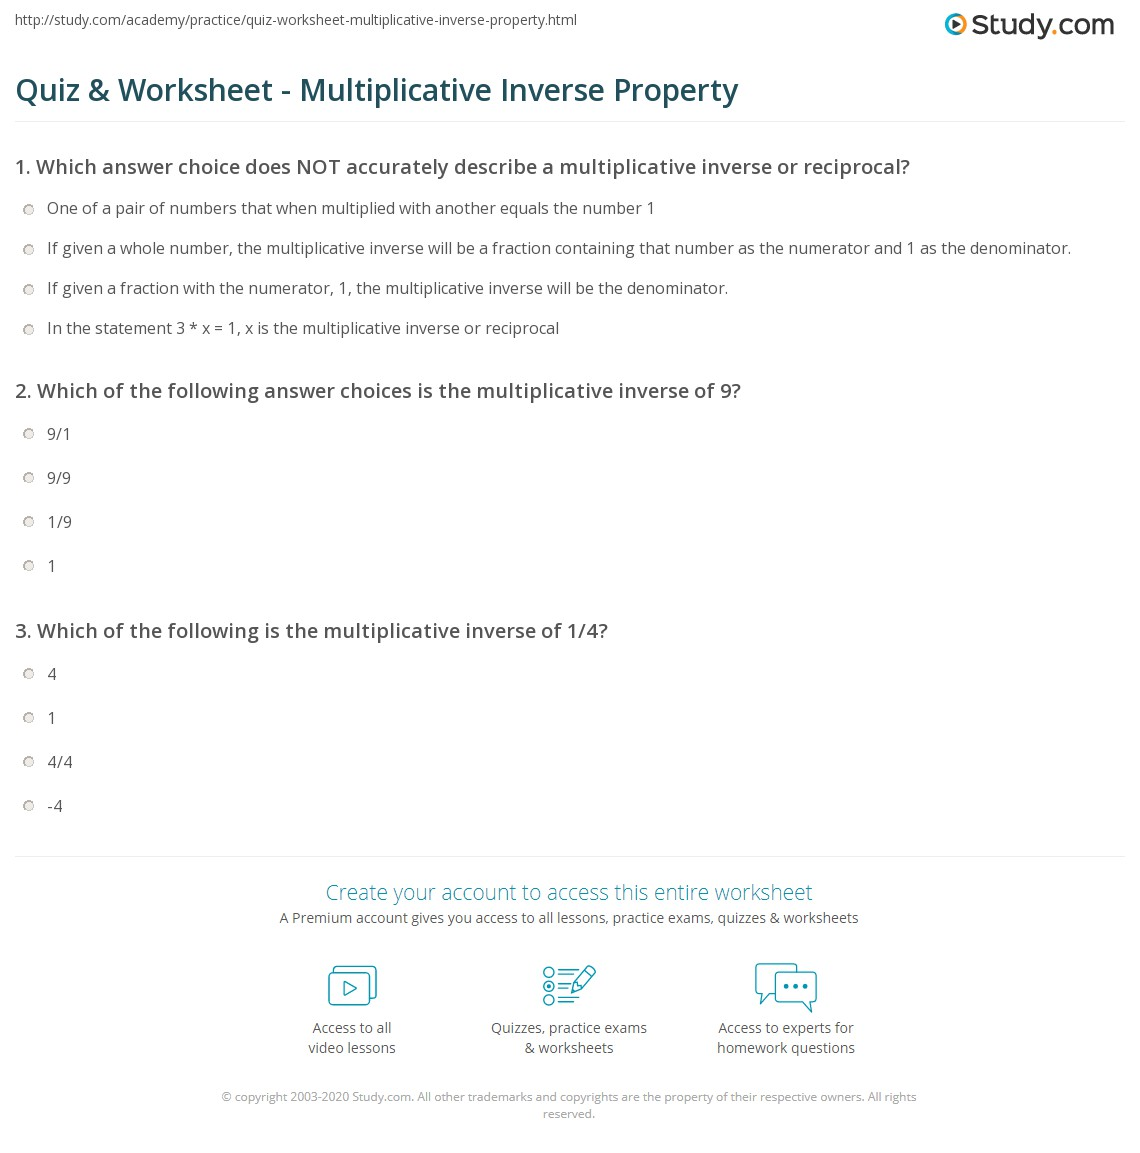 Quiz Worksheet Multiplicative Inverse Property – Multiplicative Inverse Worksheet